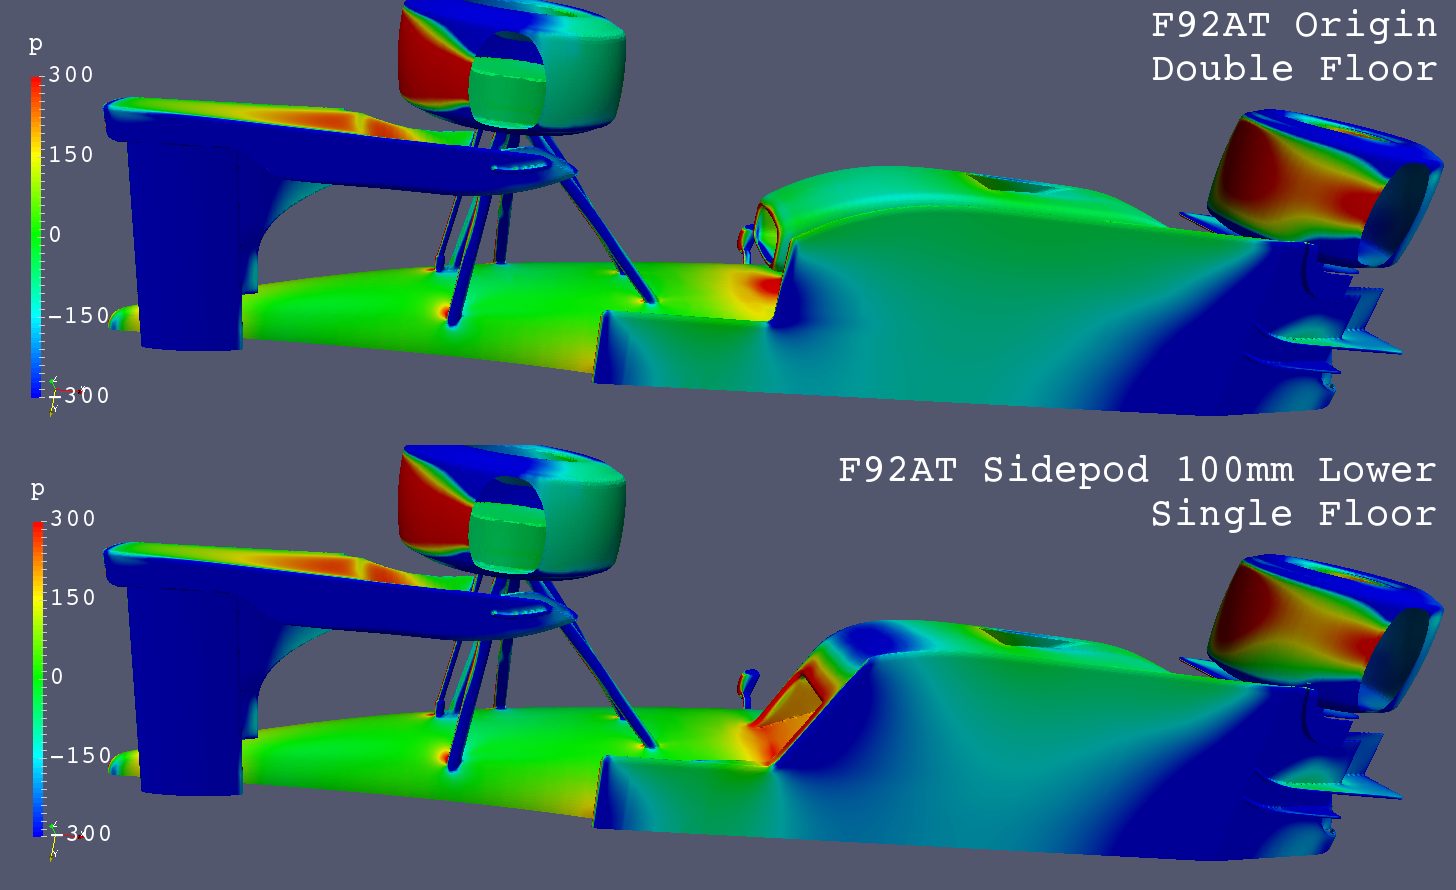 f92at_cfd_single-double-floor_pressure-comparison_bottom-view